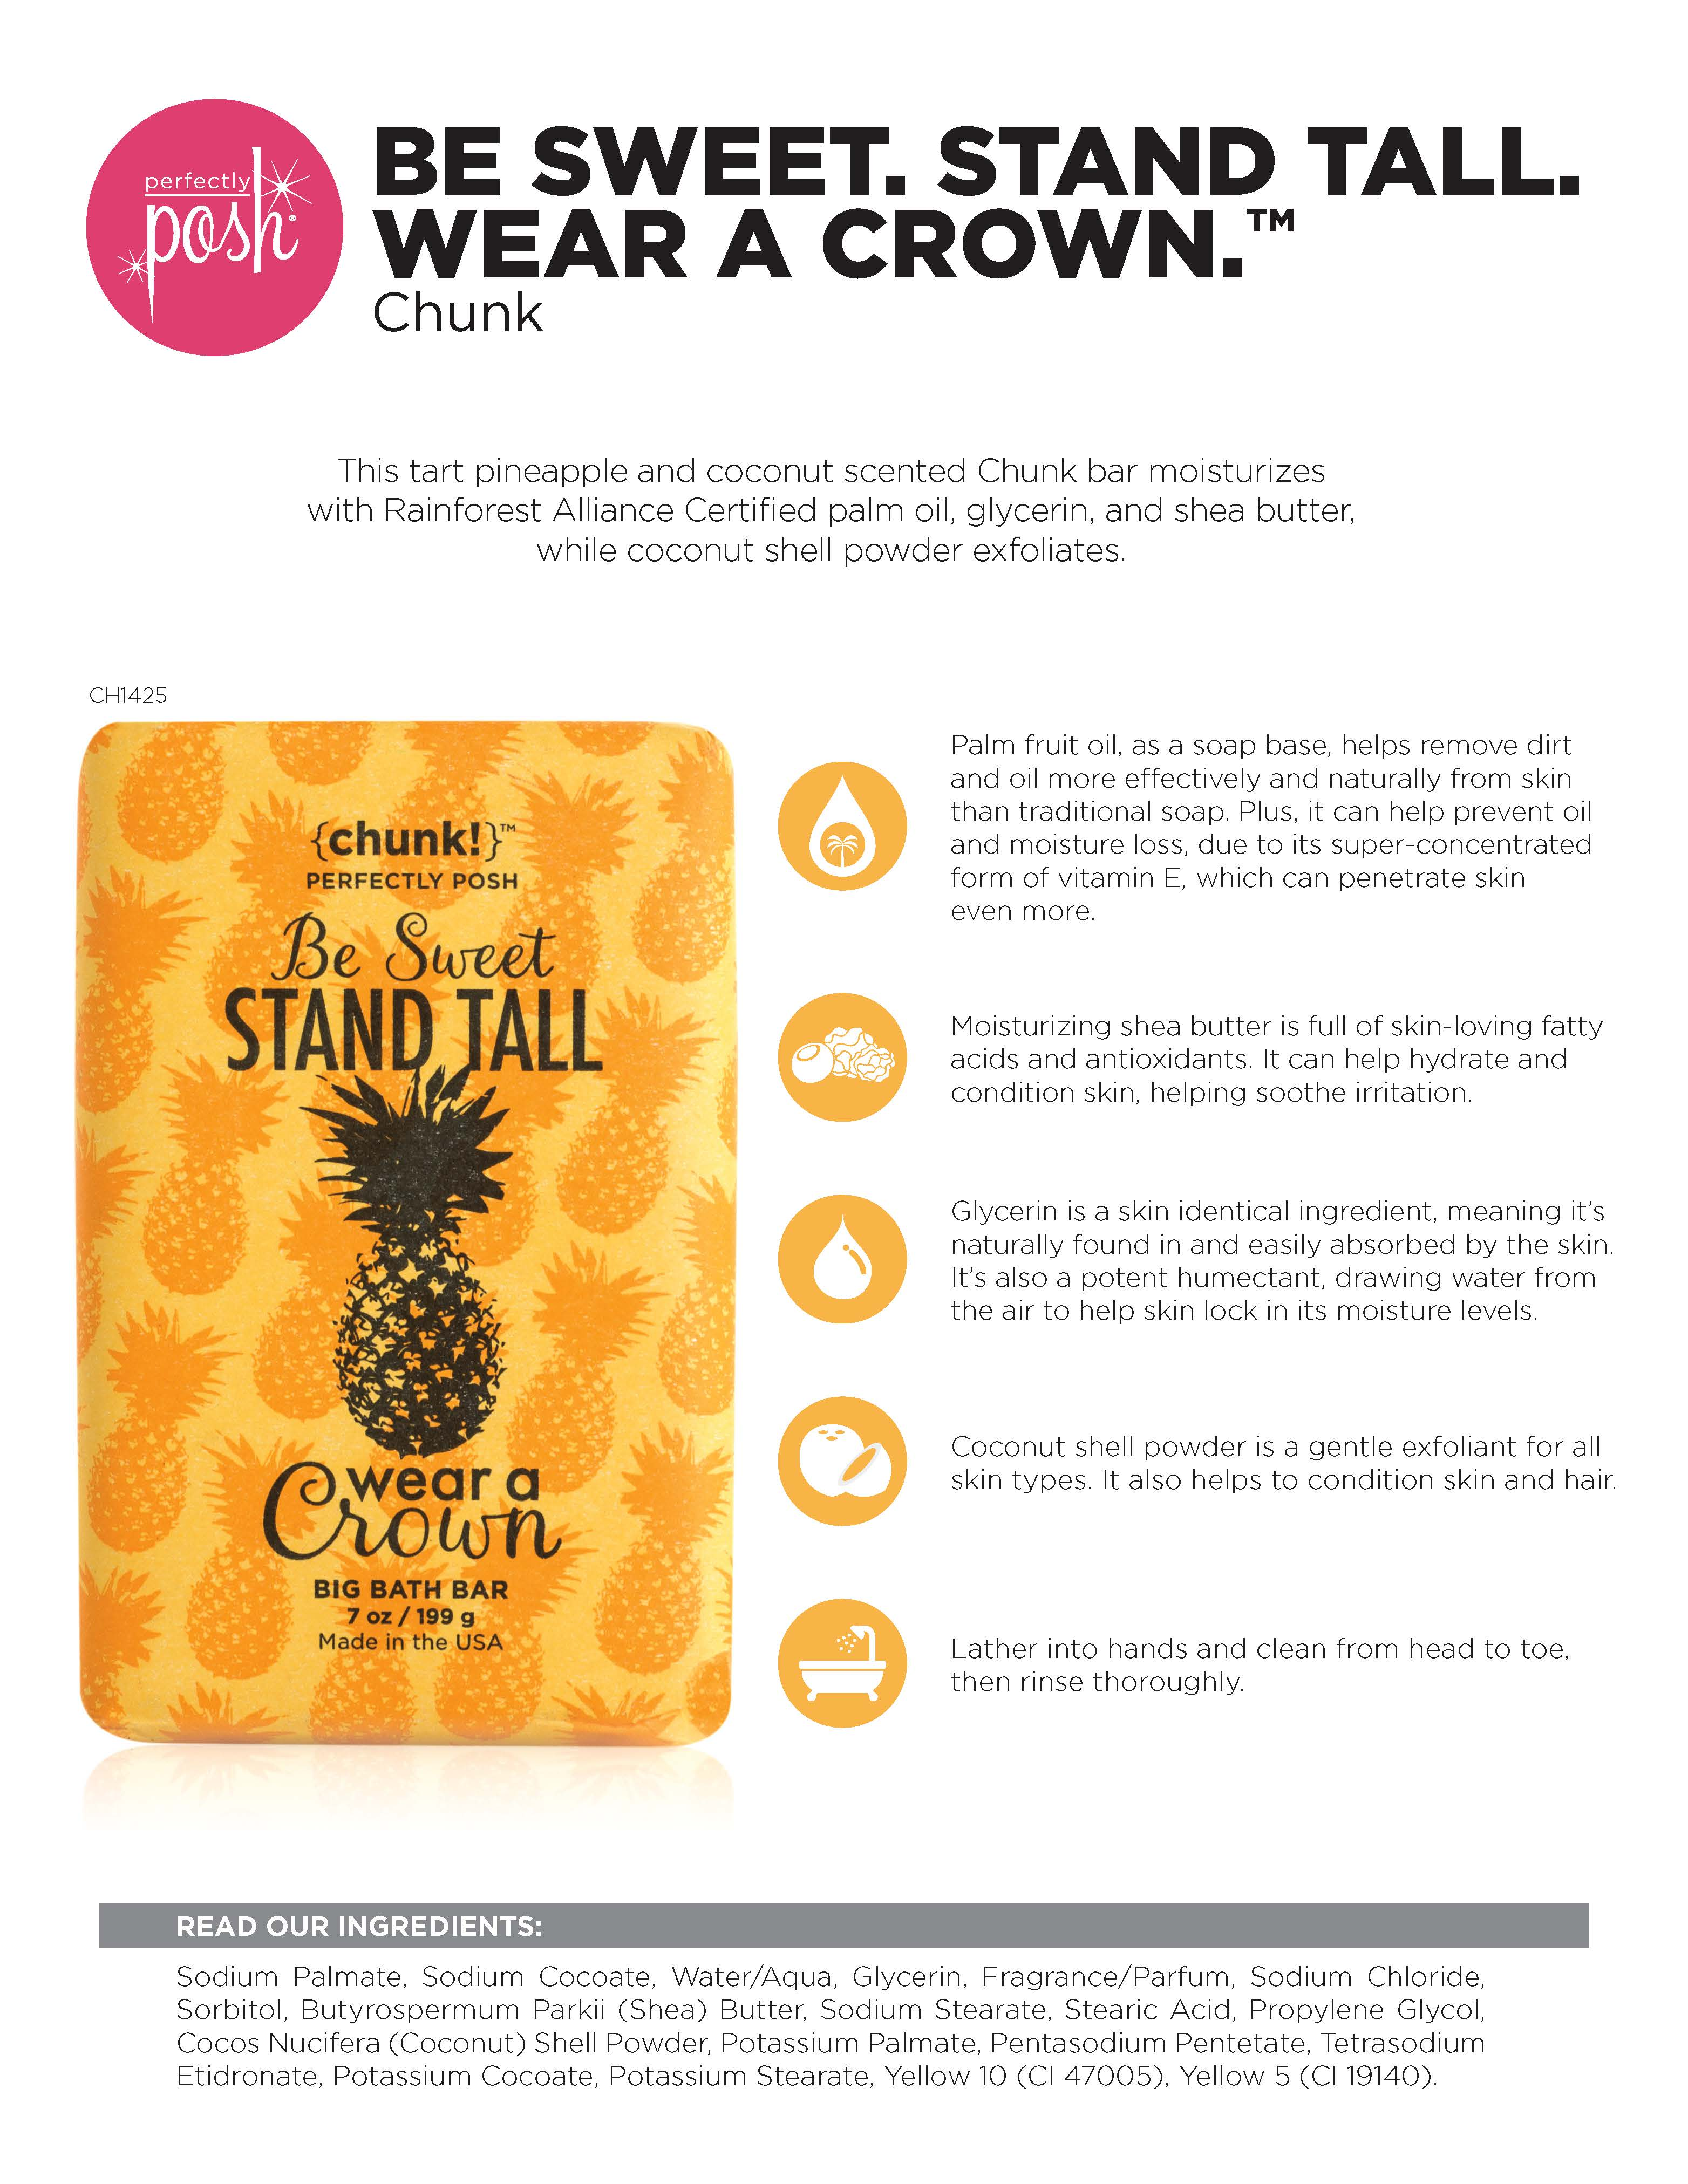 Be Sweet, Stand Tall, Wear a Crown Chunk